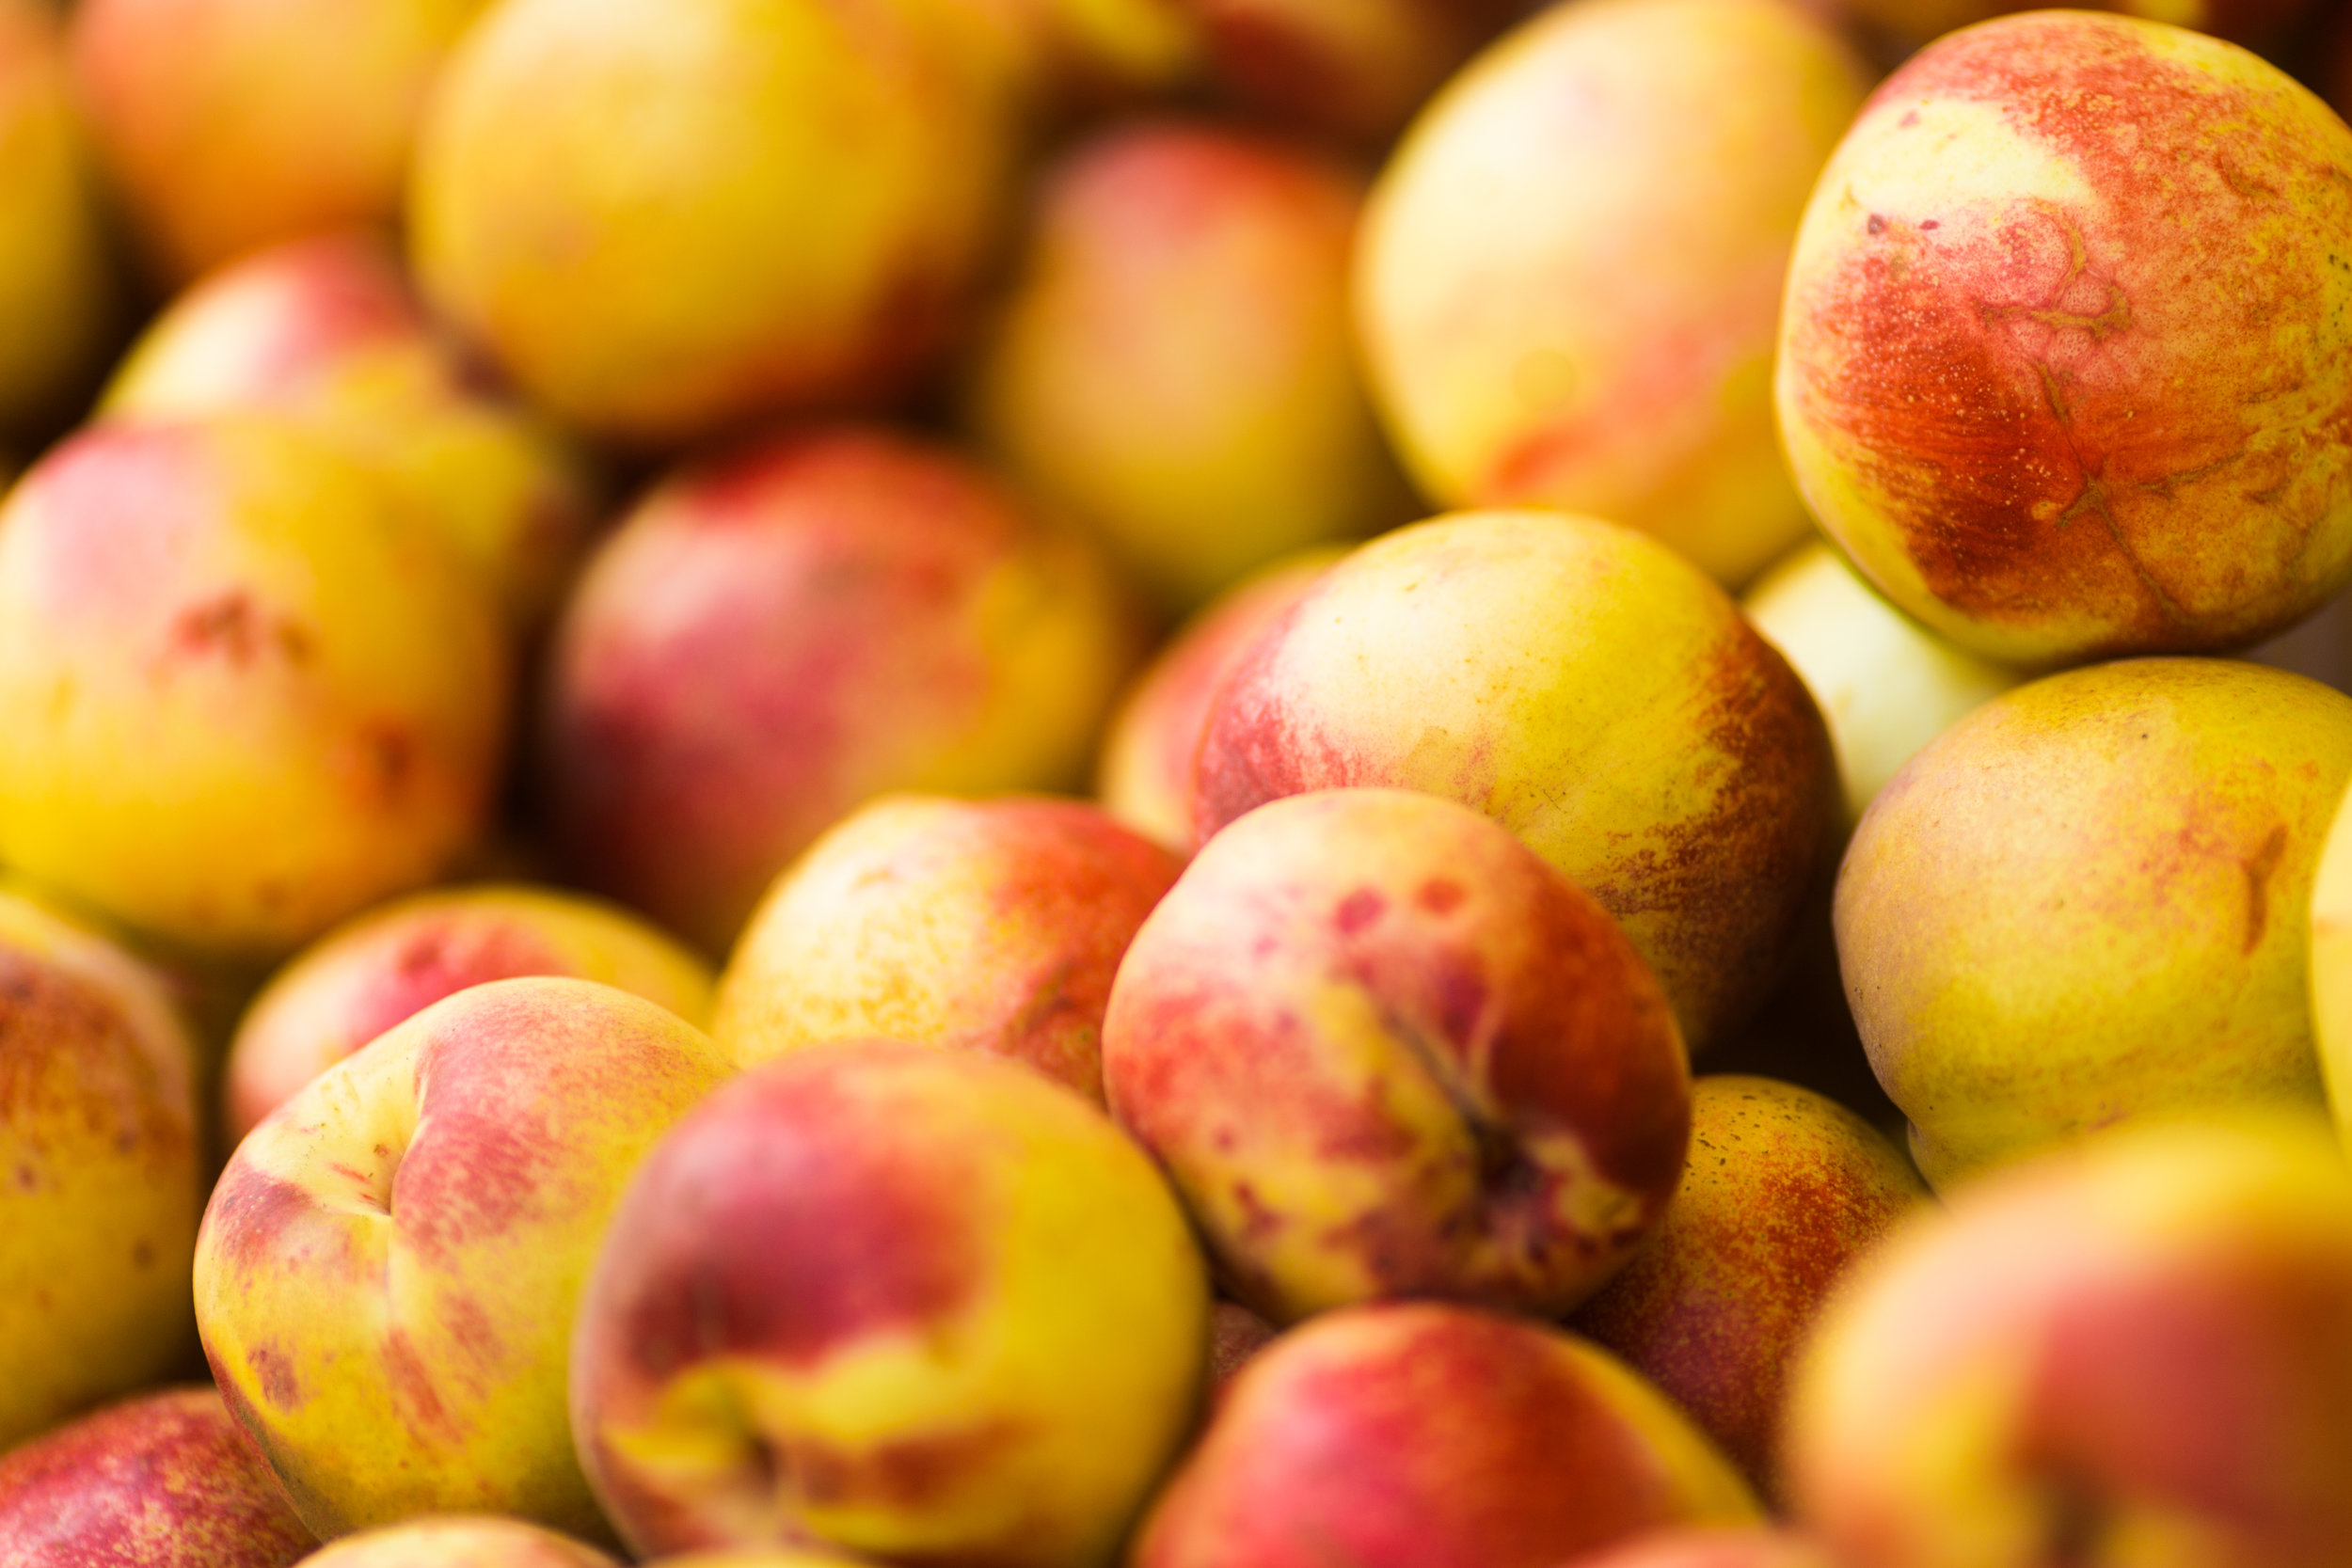 """Nectarines are just less fuzzy peaches."" -"